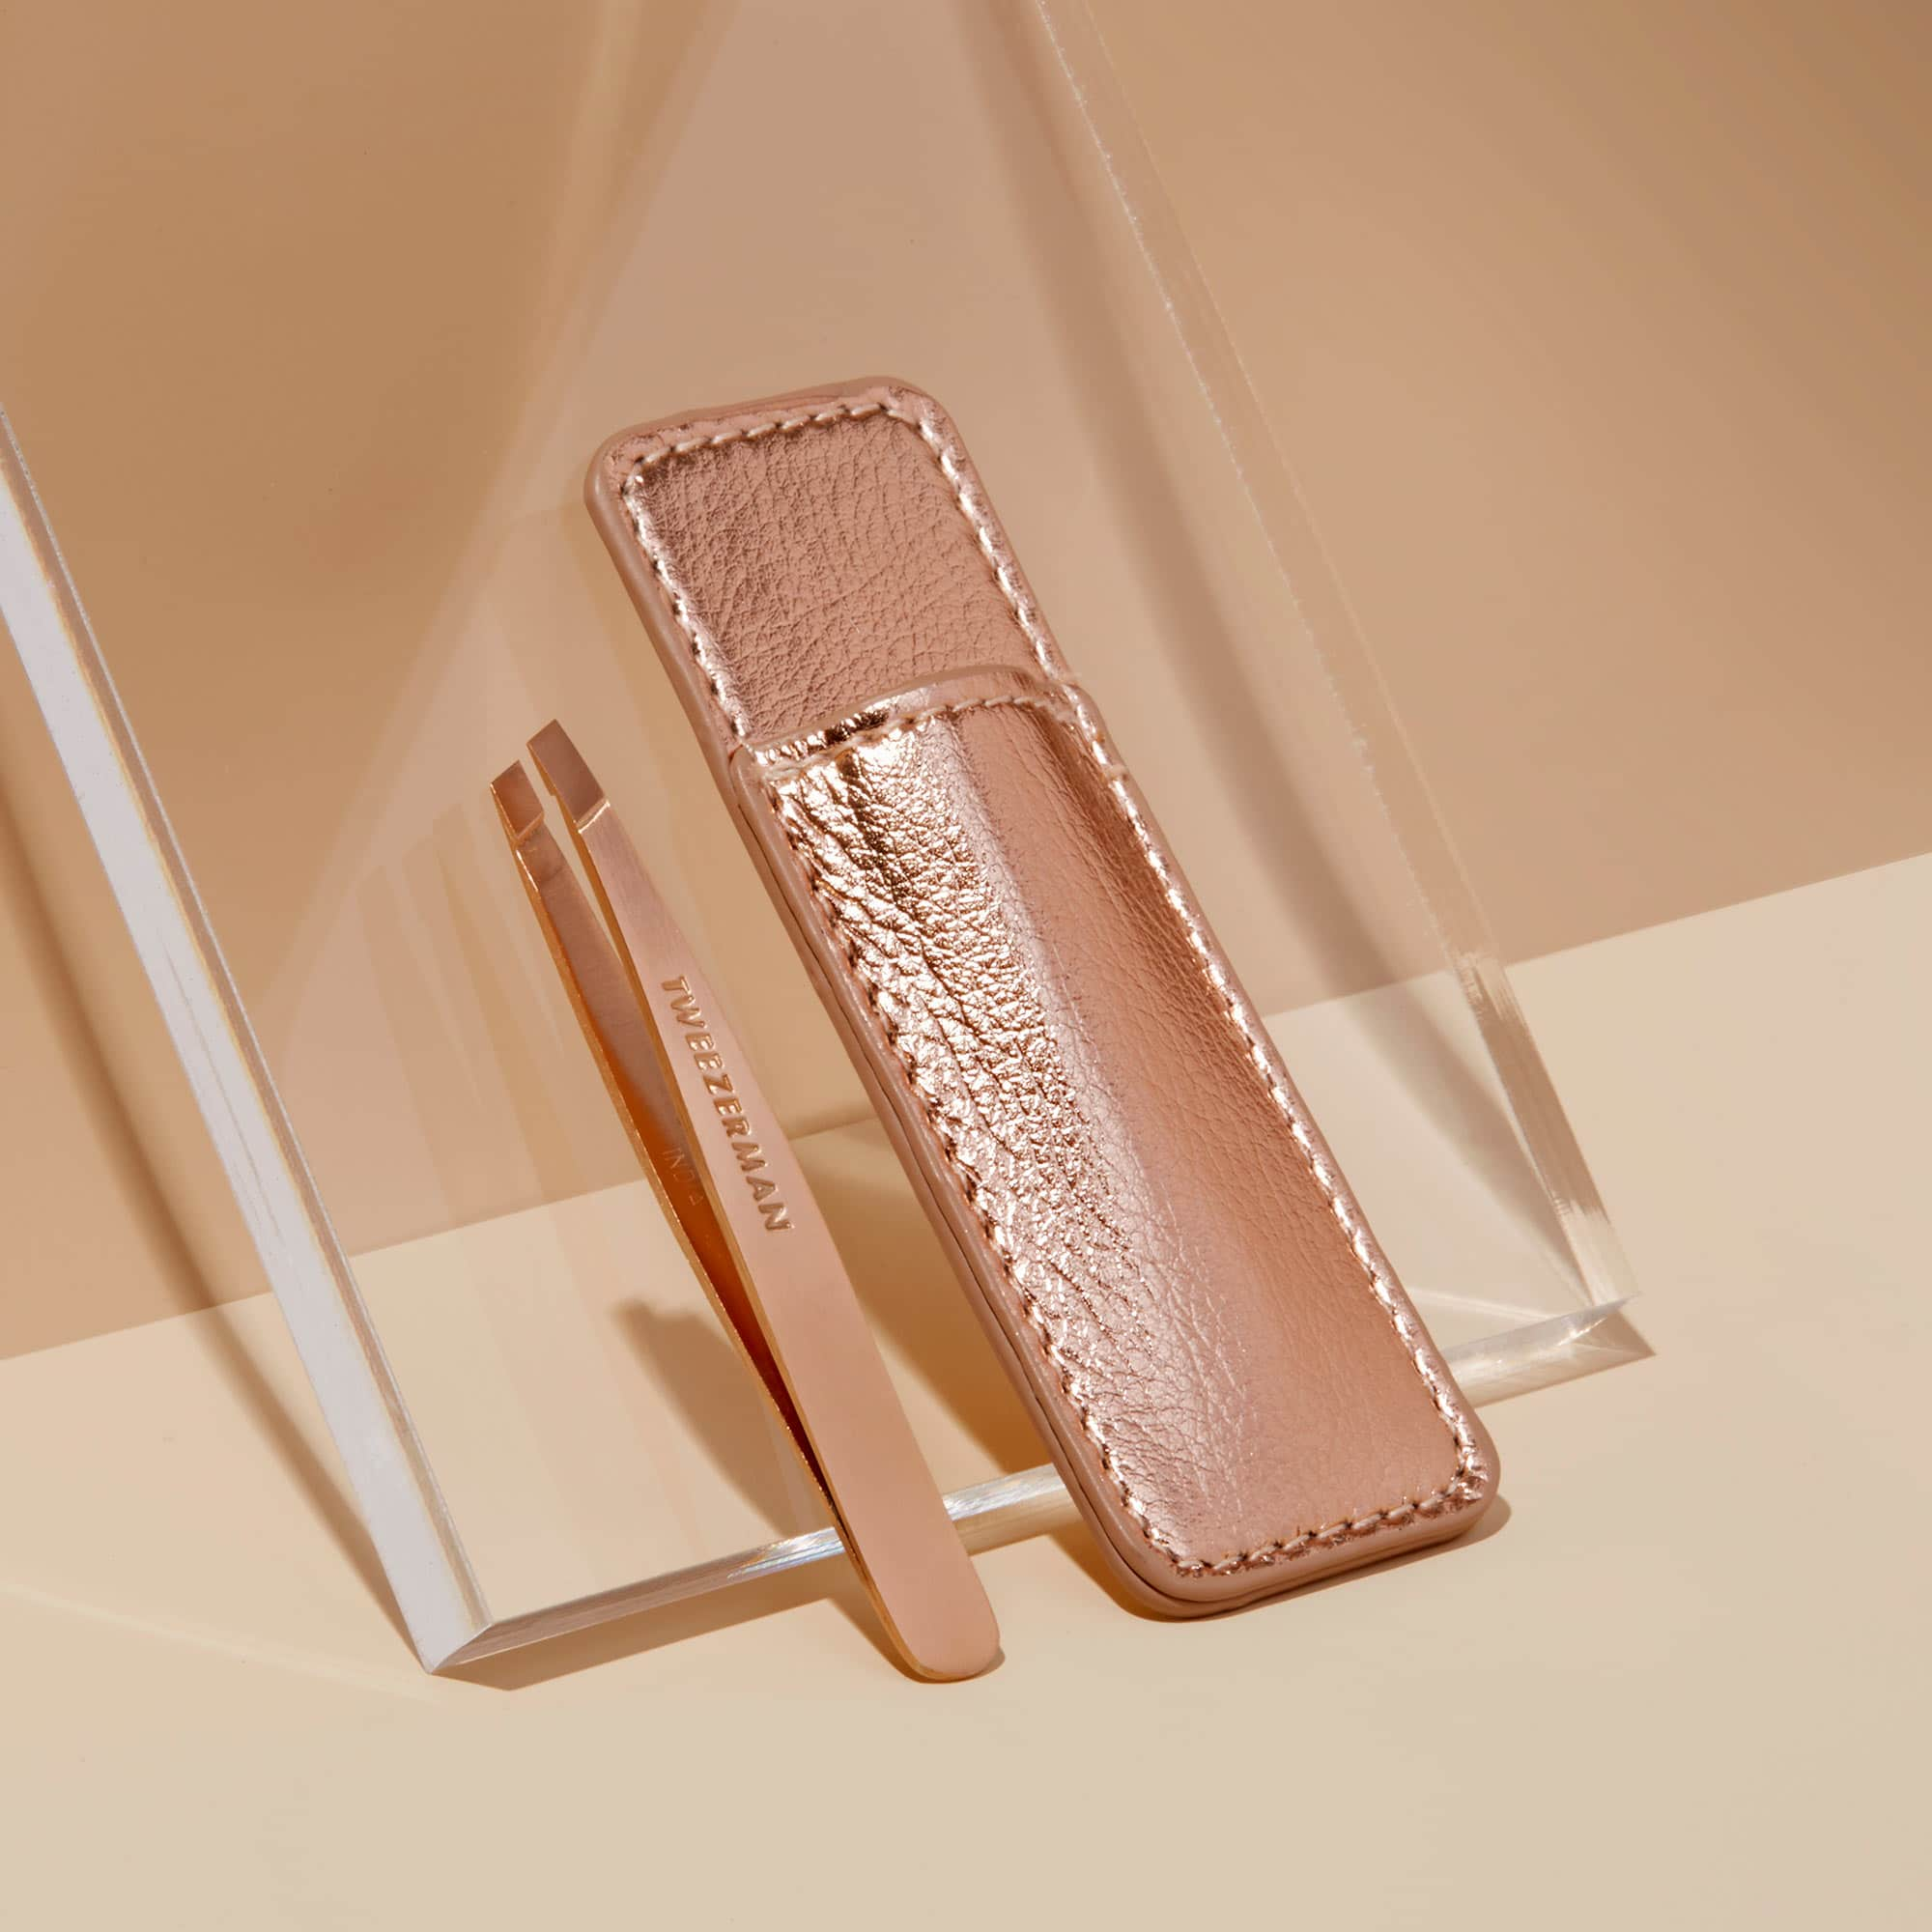 Tweezerman Rose Gold Mini Slant Tweezer with Case - Limited Edition